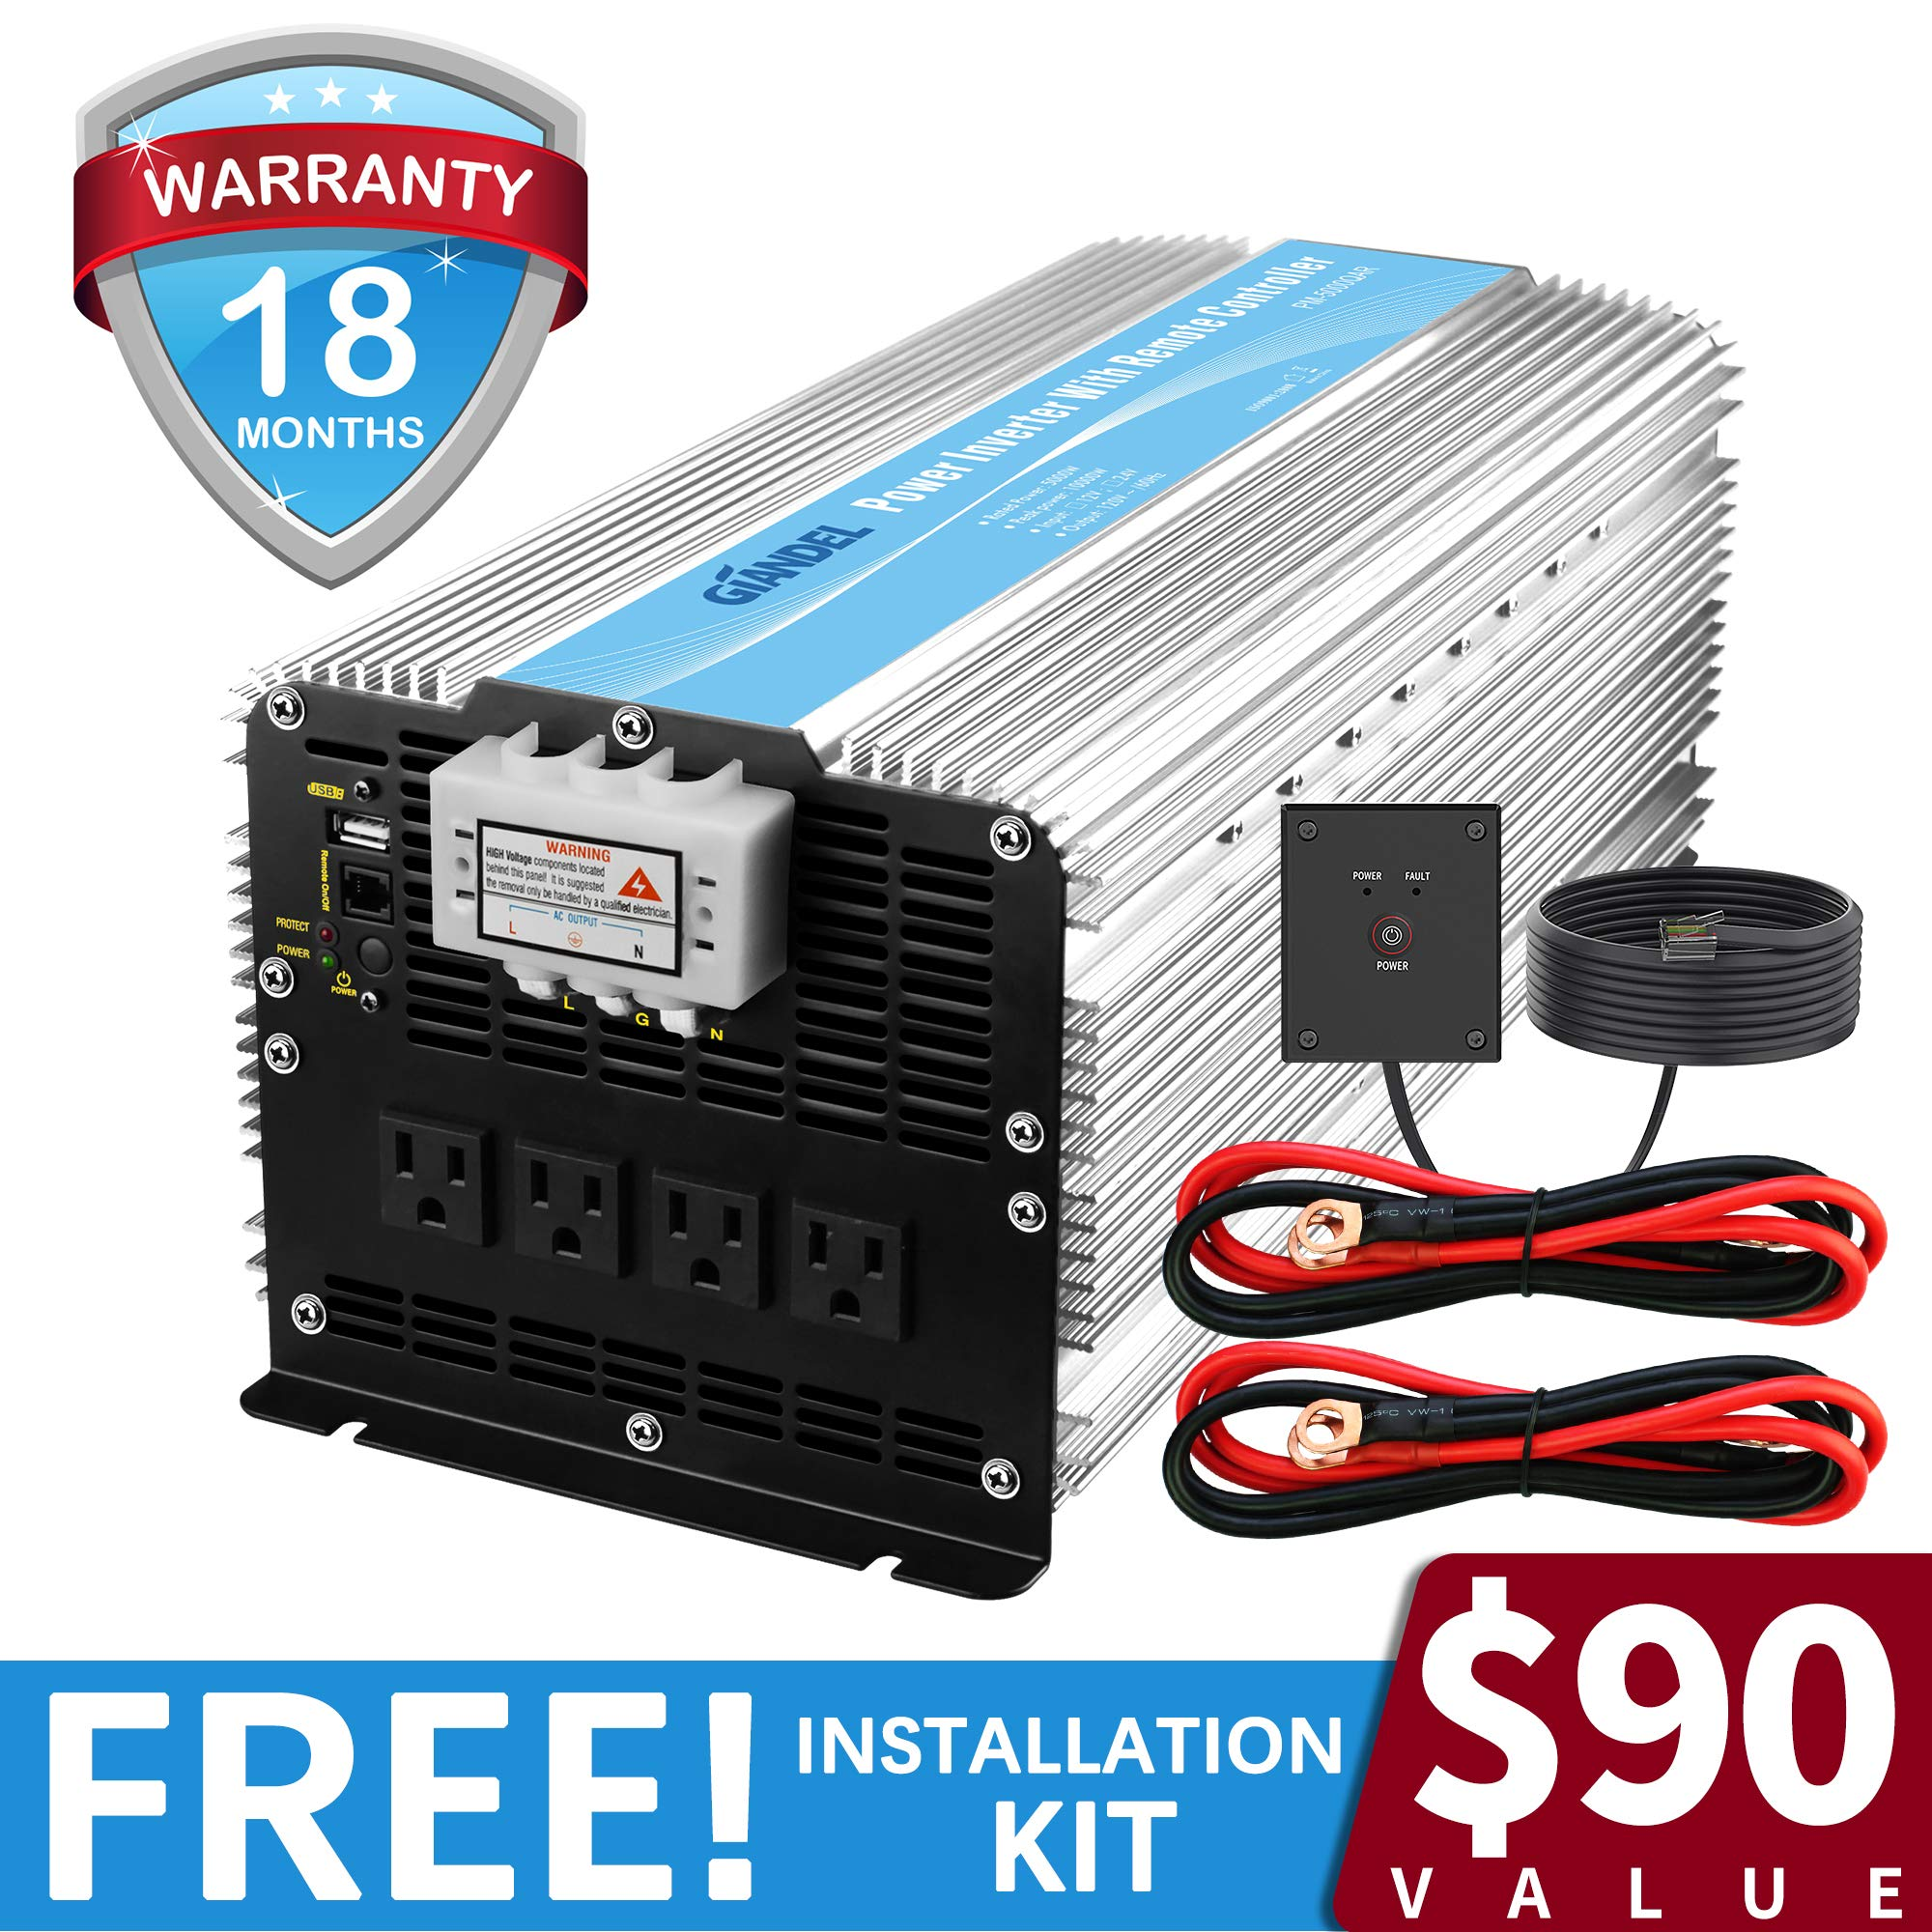 Giandel 5000W Heavy Duty Power Inverter 12V DC to 110V 120V AC with Remote Control and 4 AC Outlets & USB Port for RV Truck Boat by Giandel